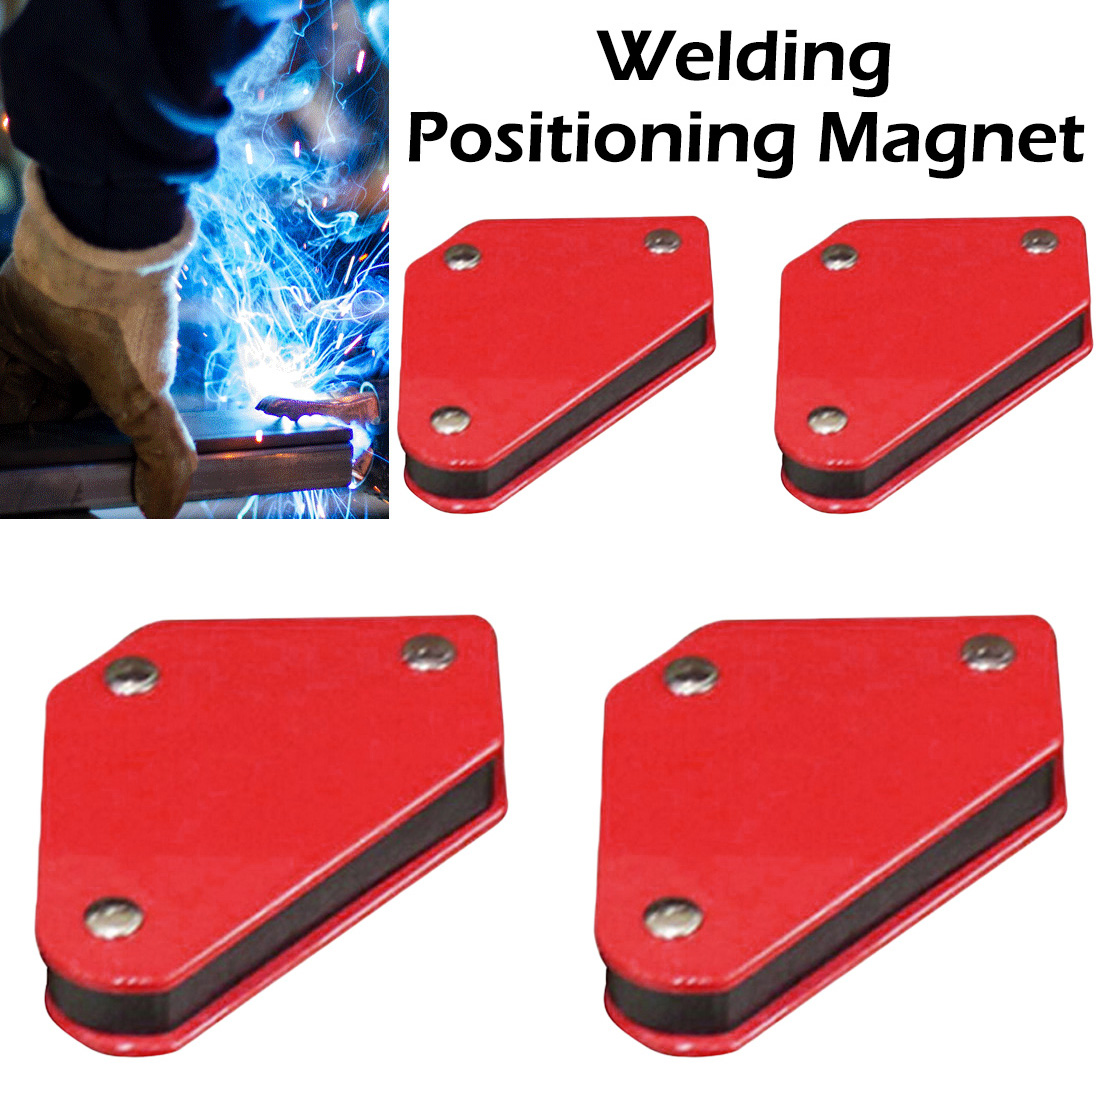 4 Pcs/set Mini Triangle-Welding Positioner 9Lb Magnetic Fixed Angle Soldering Locator Tools Without Switch Welding Accessories